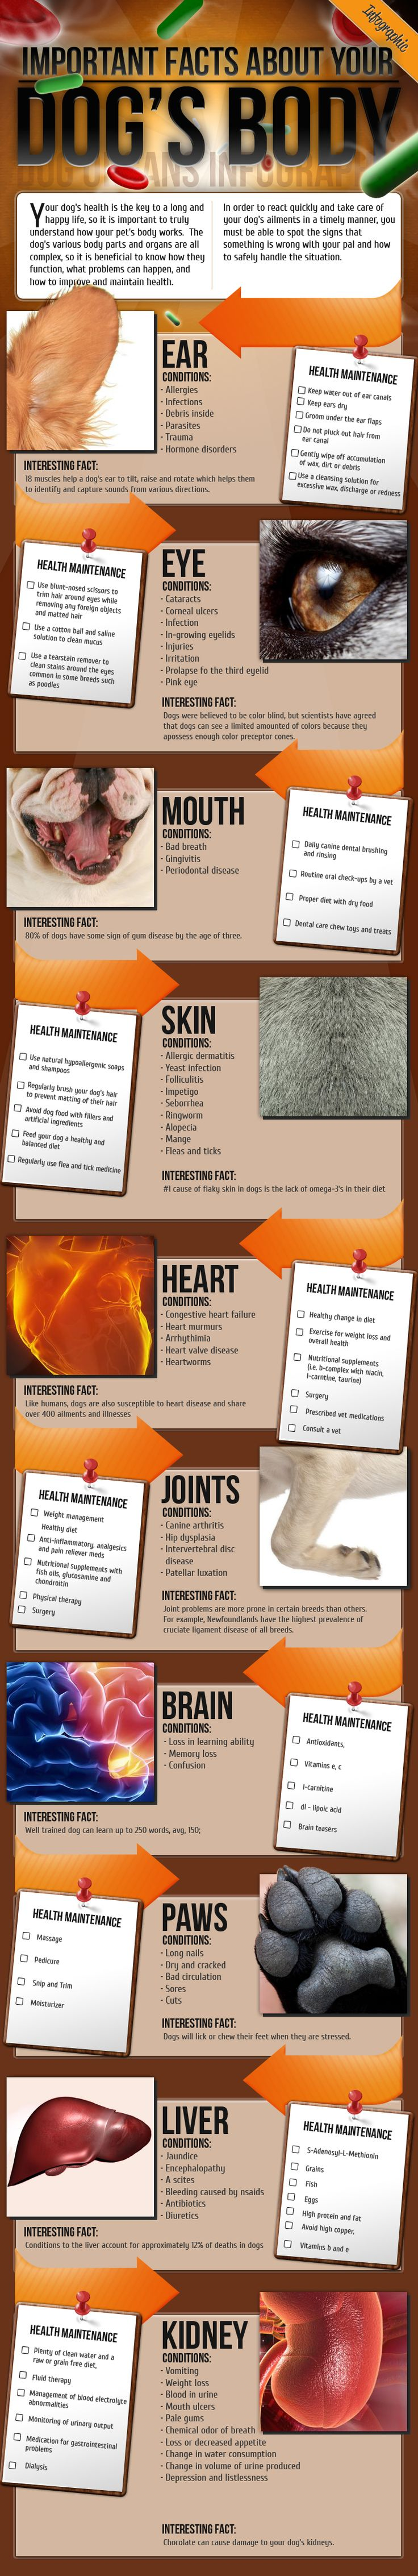 Important facts about your dog's body /.,.\ Info to help keep the furry ones happy & healthy.